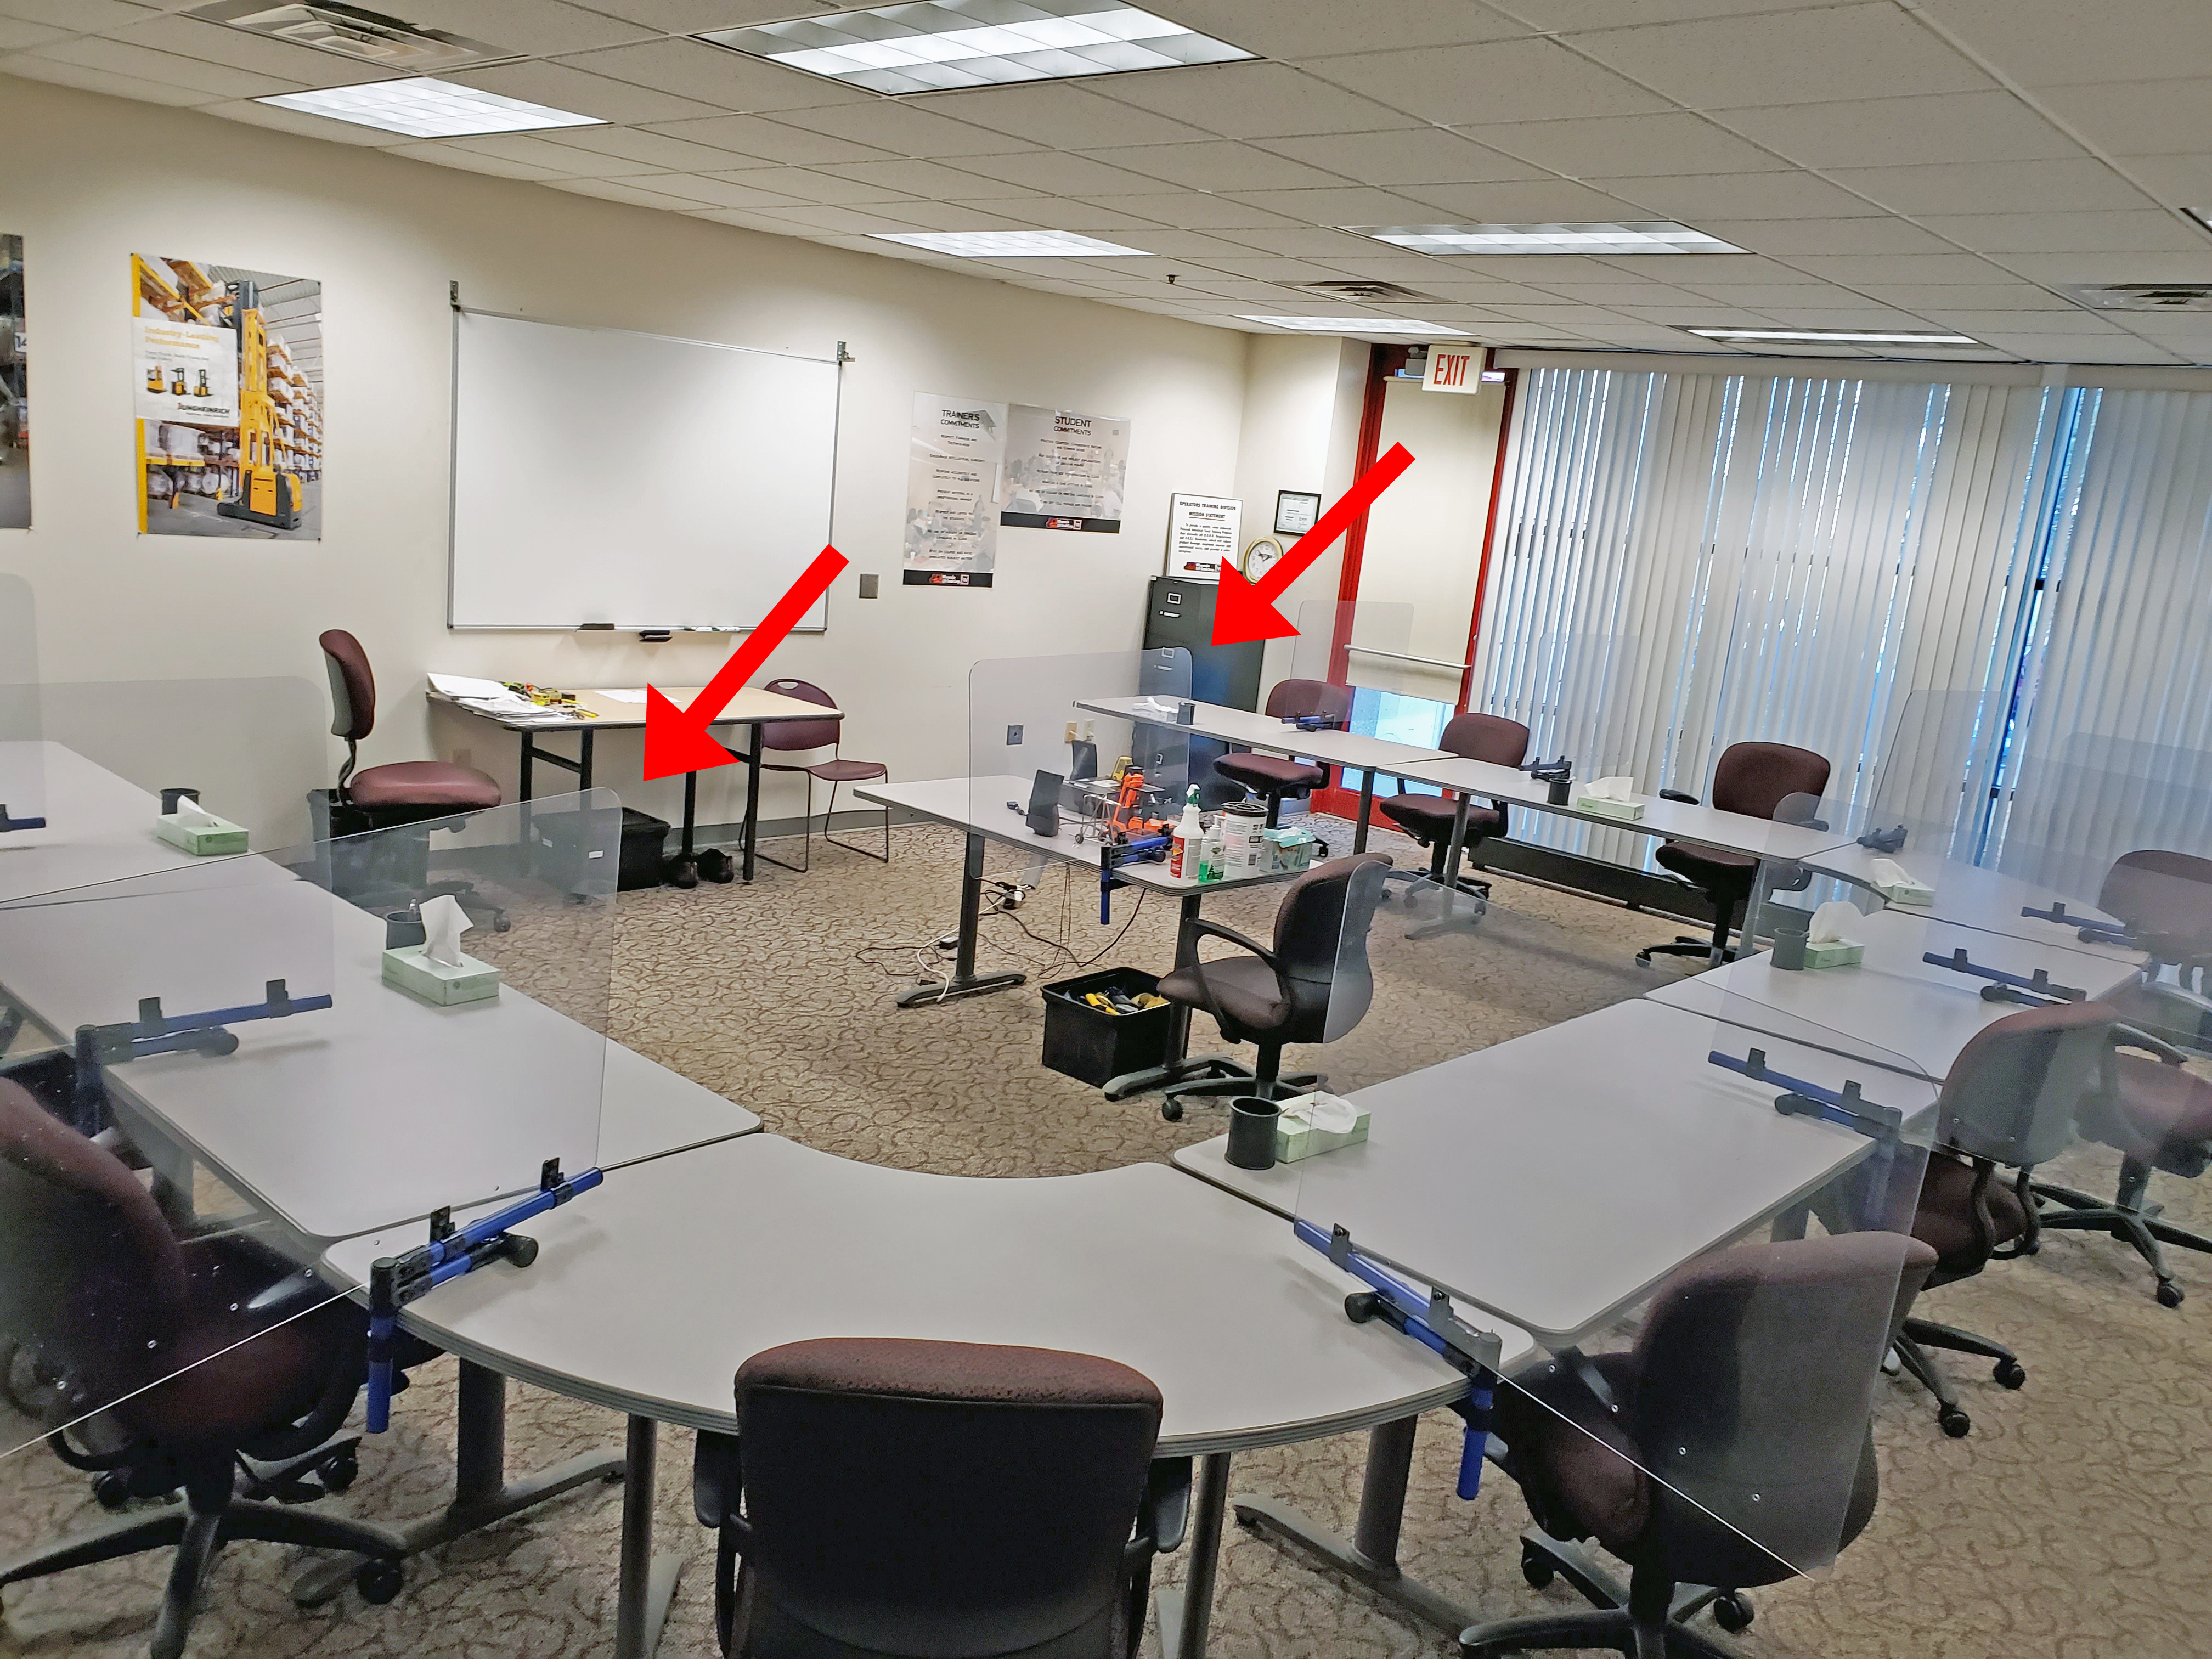 Wisconsin Lift Truck training added partition dividers to classroom